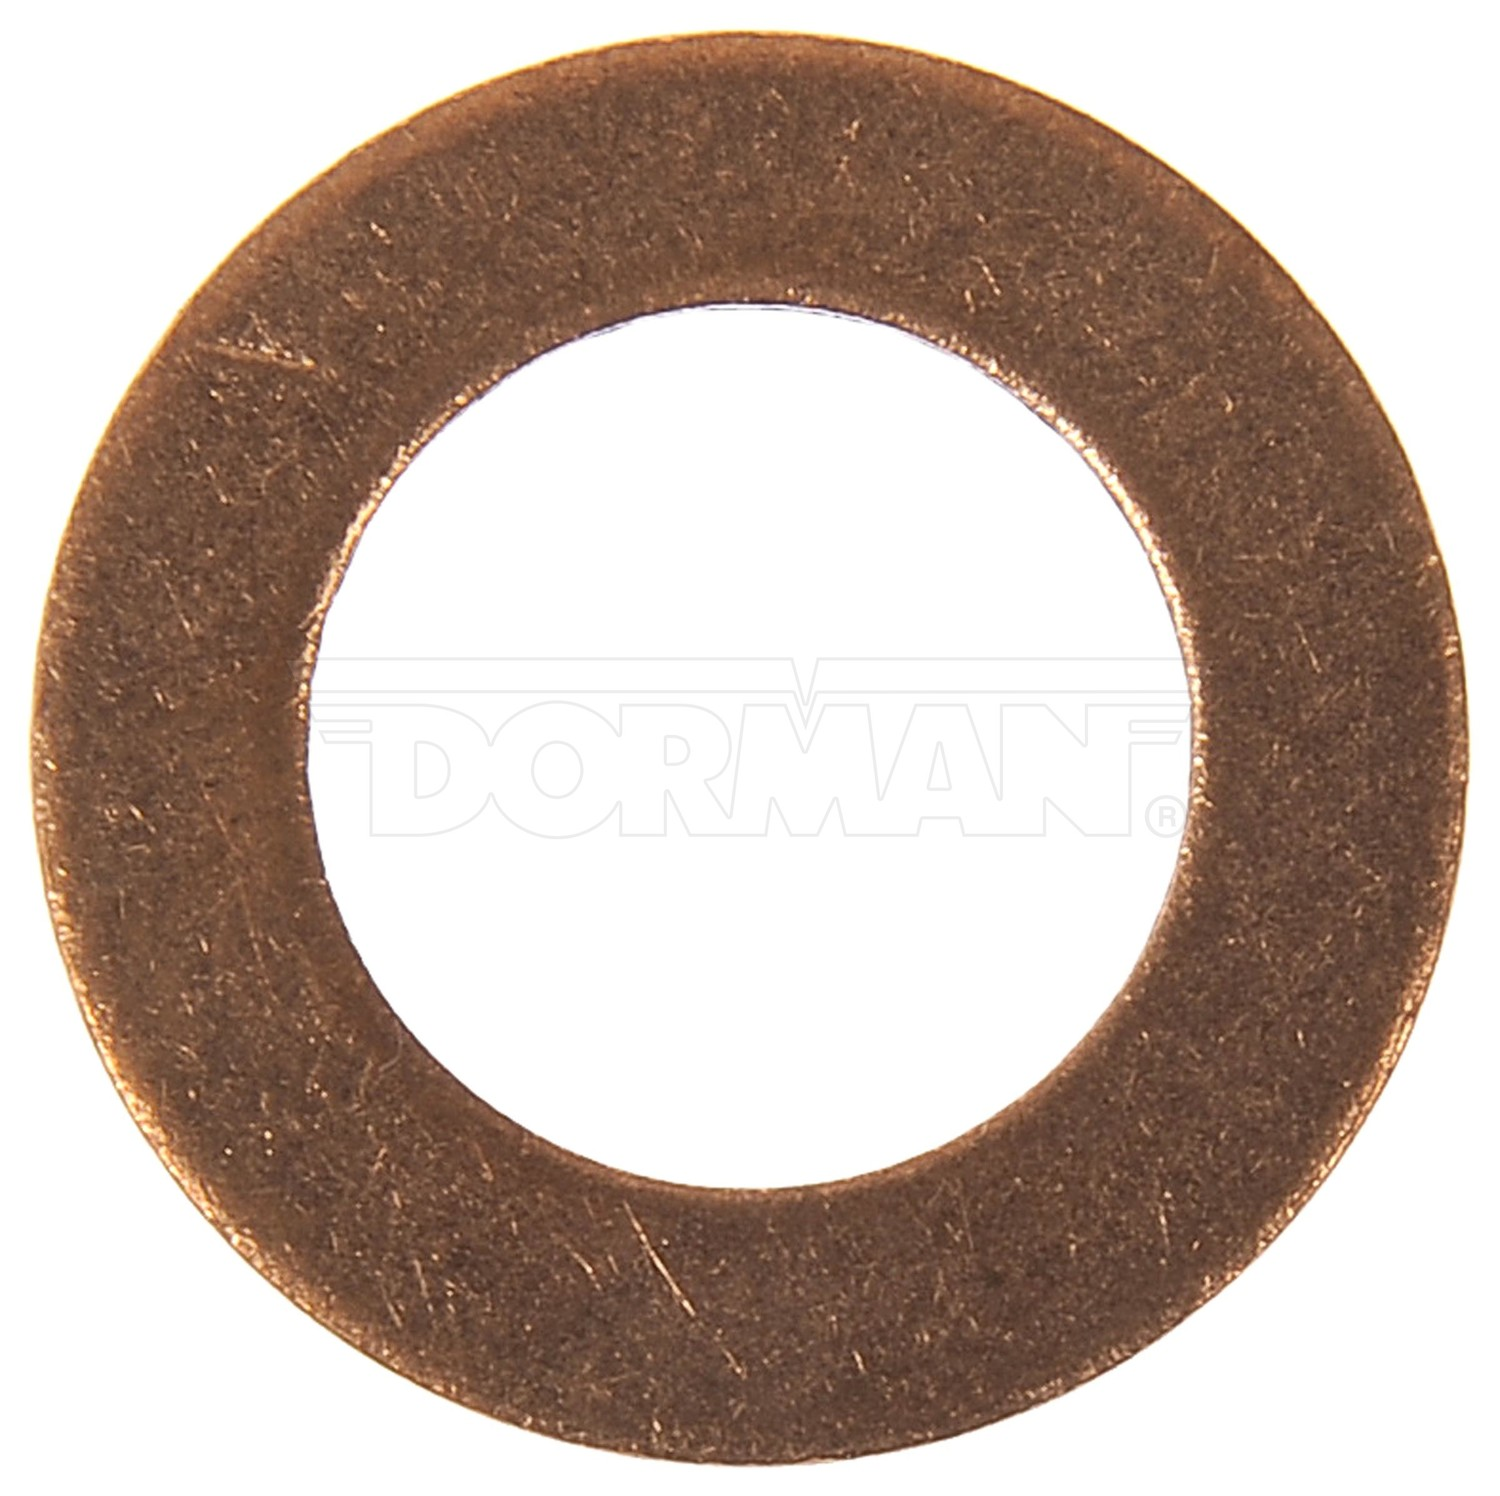 DORMAN - HELP - Brake Hydraulic Hose To Caliper Bolt Washer - RNB 66269